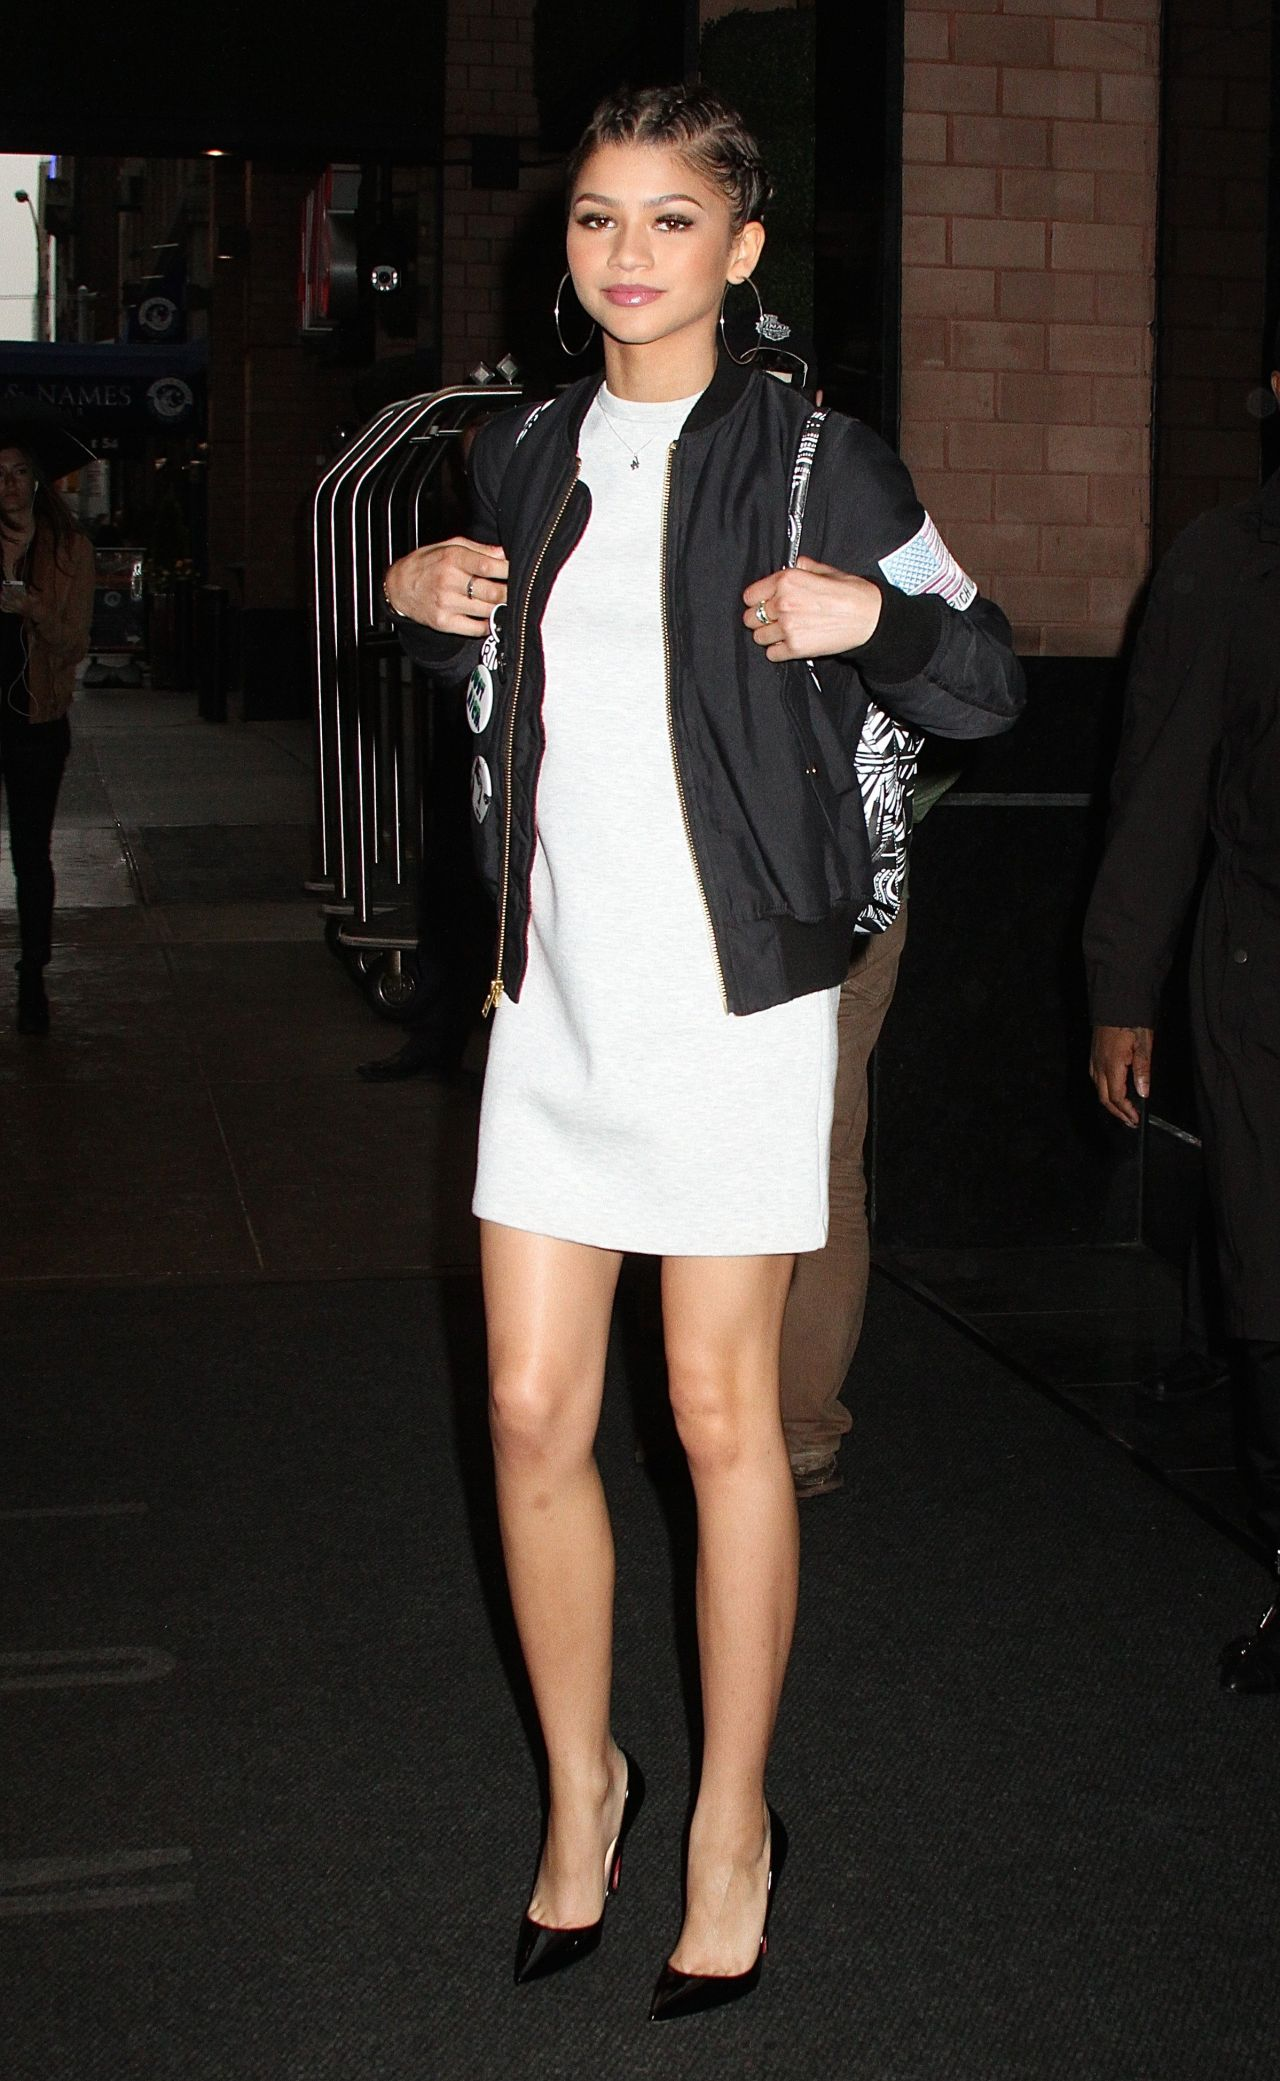 Zendaya Coleman - Leaving Her Hotel in New York City, April 2015